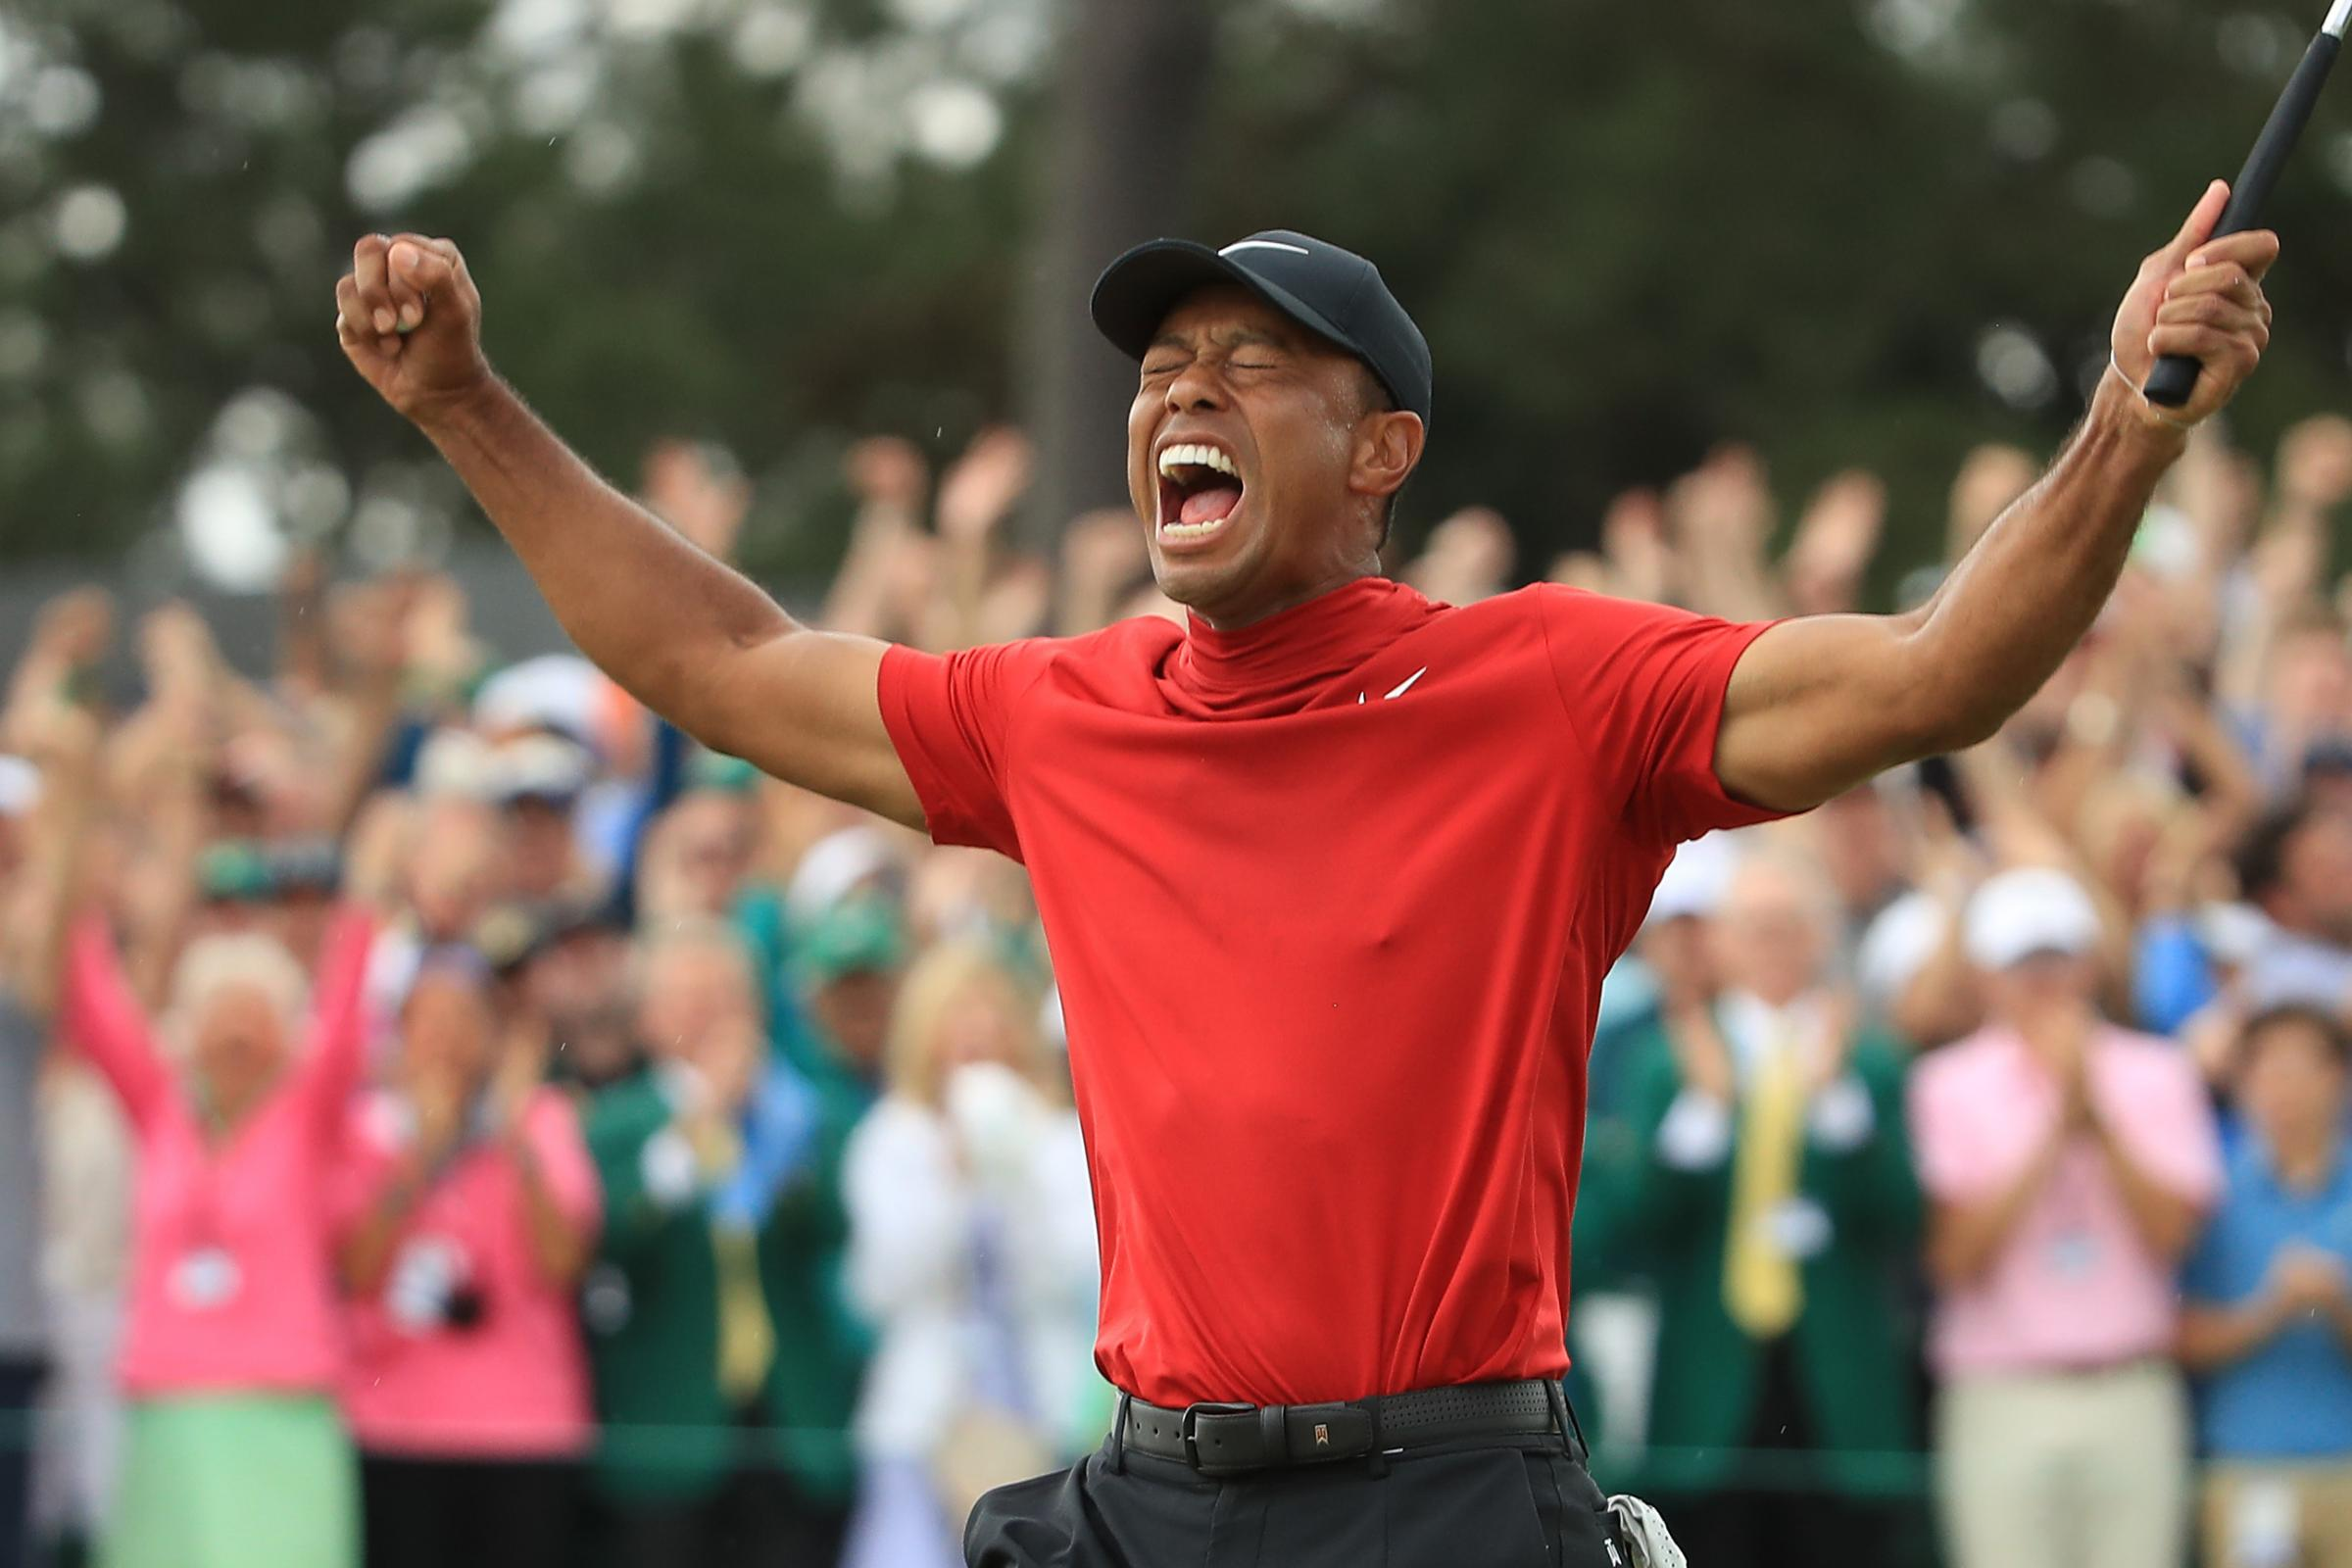 AUGUSTA, GEORGIA - APRIL 14: Tiger Woods of the United States celebrates after sinking his putt to win during the final round of the Masters at Augusta National Golf Club on April 14, 2019 in Augusta, Georgia. (Photo by Andrew Redington/Getty Images).